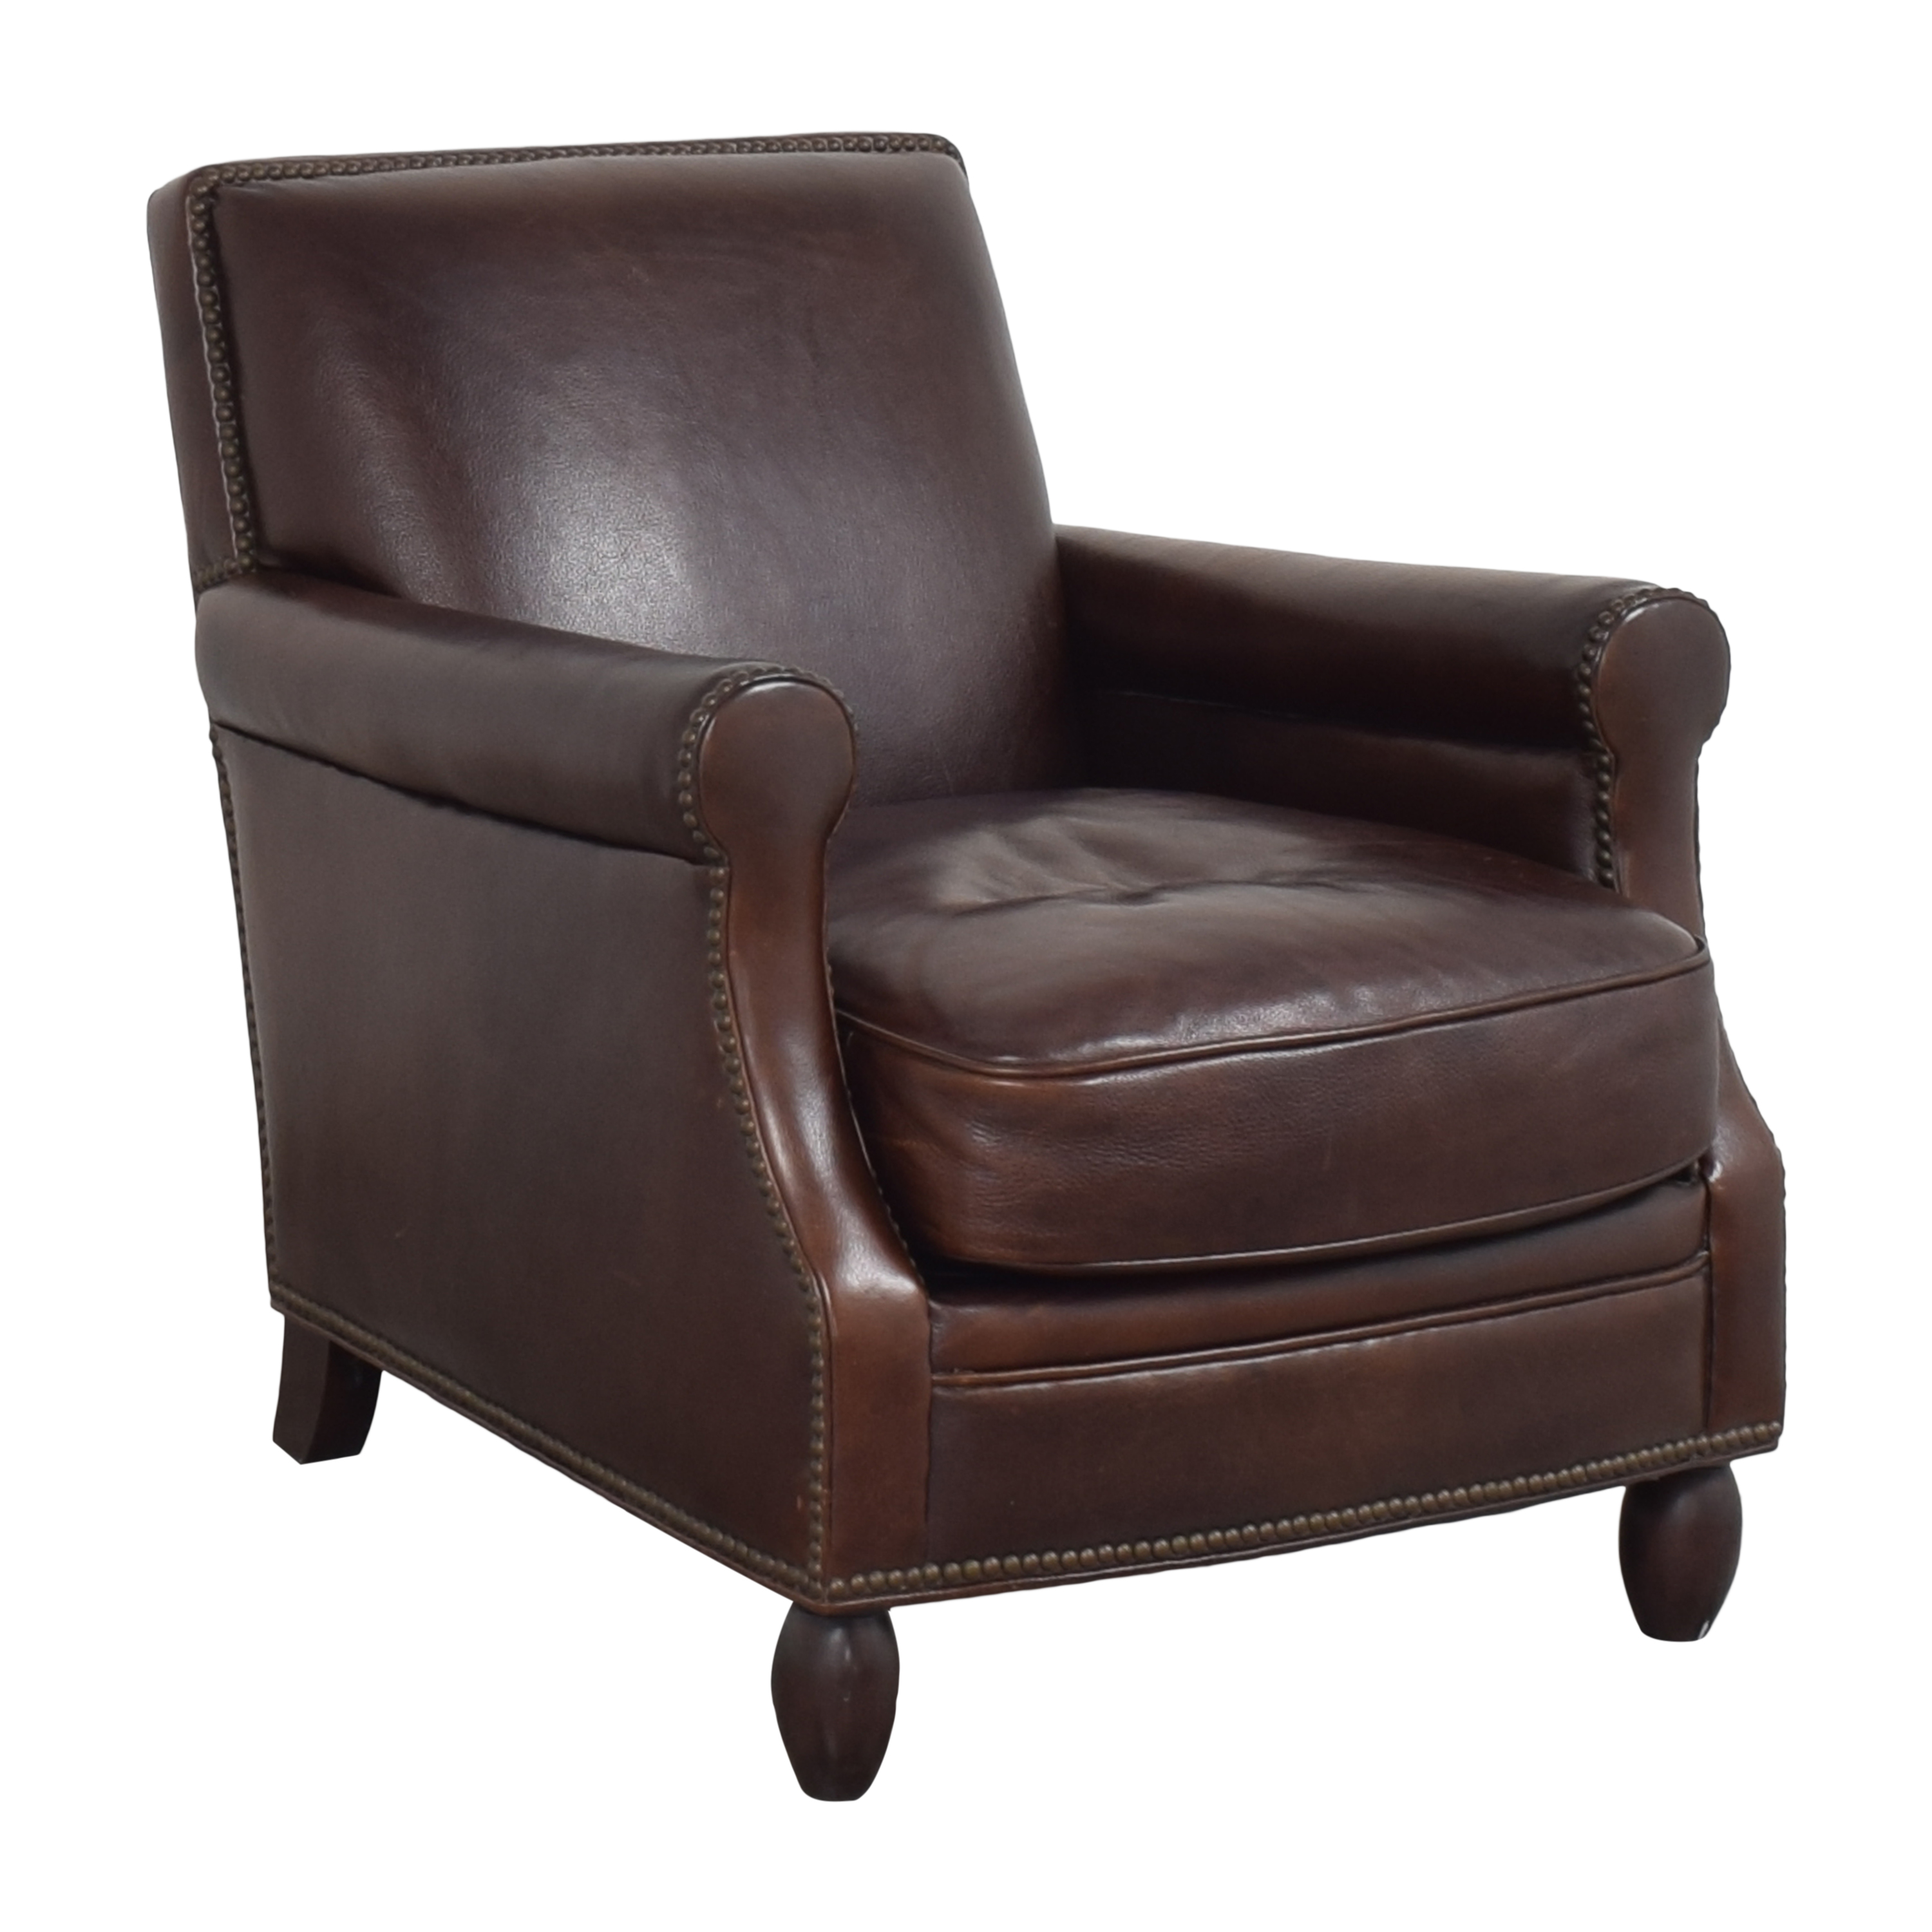 Bradington-Young Bradington-Young Roll Arm Nailhead Accent Chair ct